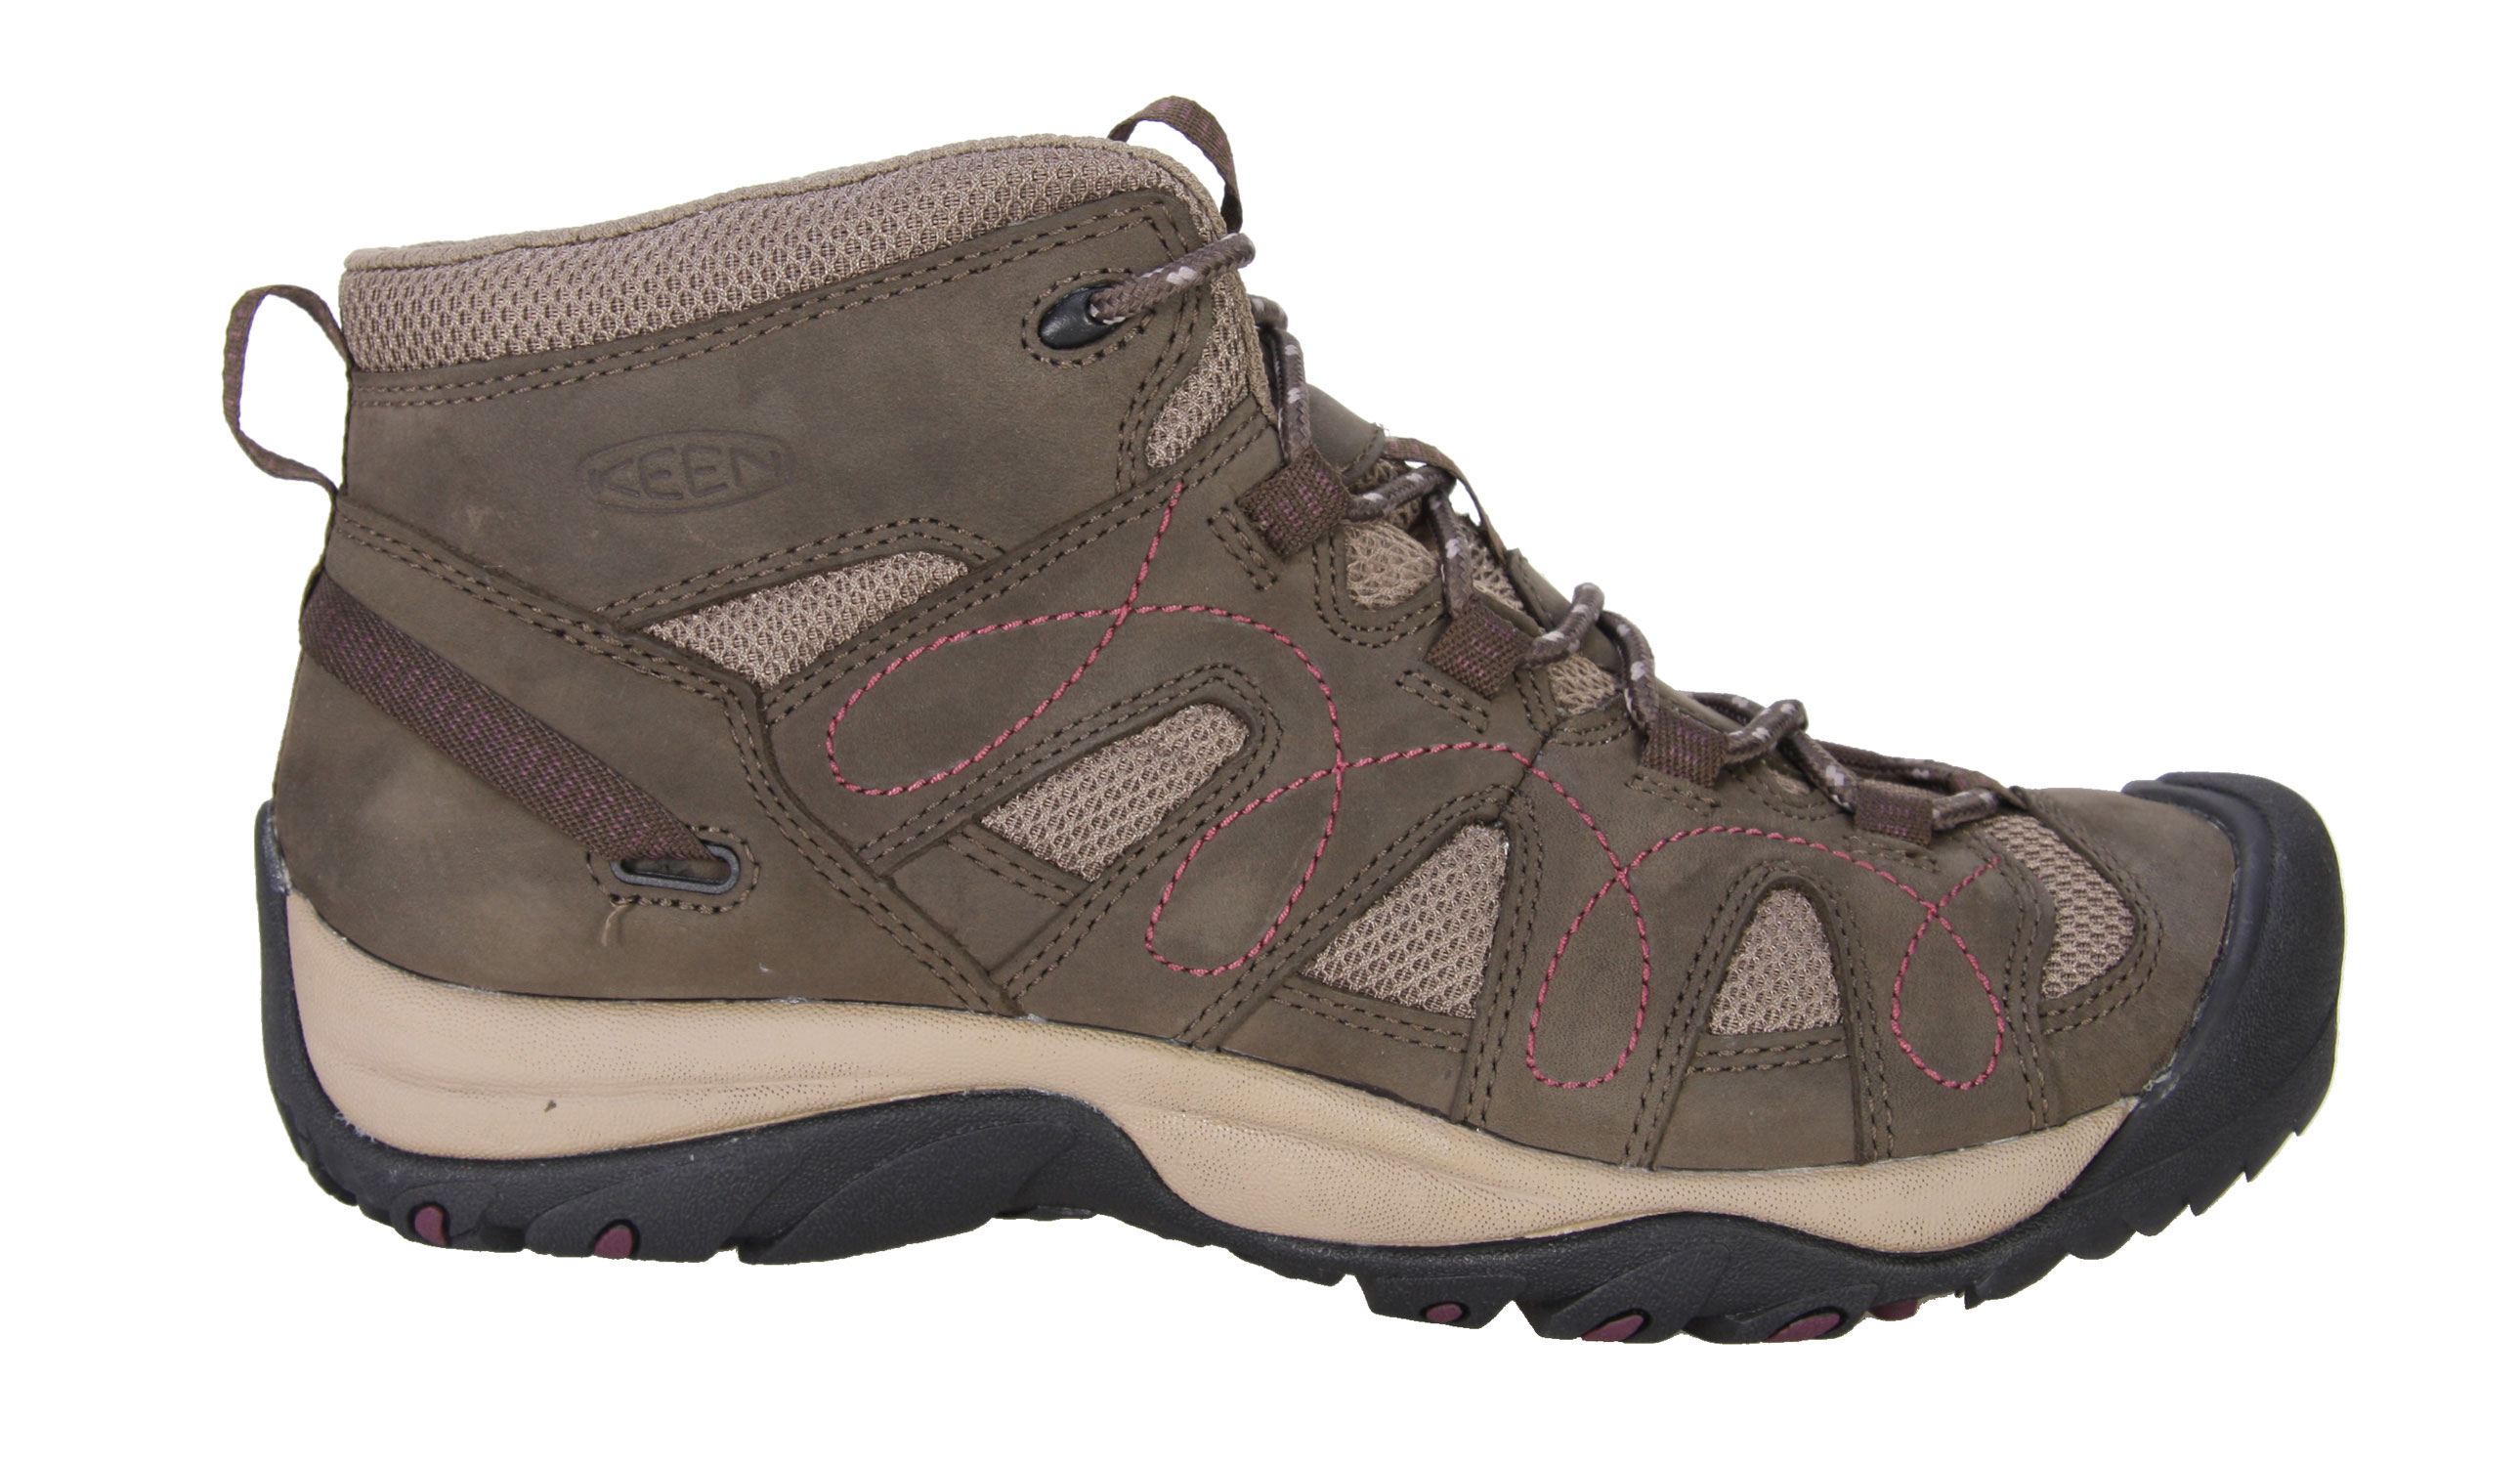 Camp and Hike For adventures in dry, warm climates, the breathable Shasta Mid makes an ideal and affordable all-around shoe for exploring canyons, scrambling up sand dunes or just kicking around town in classic KEEN comfort. The mid-ankle height provides support for carrying a pack or long days out on the trail.Key Features of The Keen Shasta Mid Women's Hiking Shoes: Leather with breathable mesh underlays Multi direction lug pattern for increased traction Non-marking rubber outsole Women's specific fit Metatomical Footbed Keen Protect - KEEN Patented Toe Protection where the shoe outsoles wrap up and over the toes for ultimate protection Weight: 13.7 oz / 388 GRAMS Fit Tip: We find this style runs about a 1/2 size small Upper: Leather Rubber: Non-marking rubber outsole Activities: Hiking Type: Boots, Shoes, Lace Up - $64.95